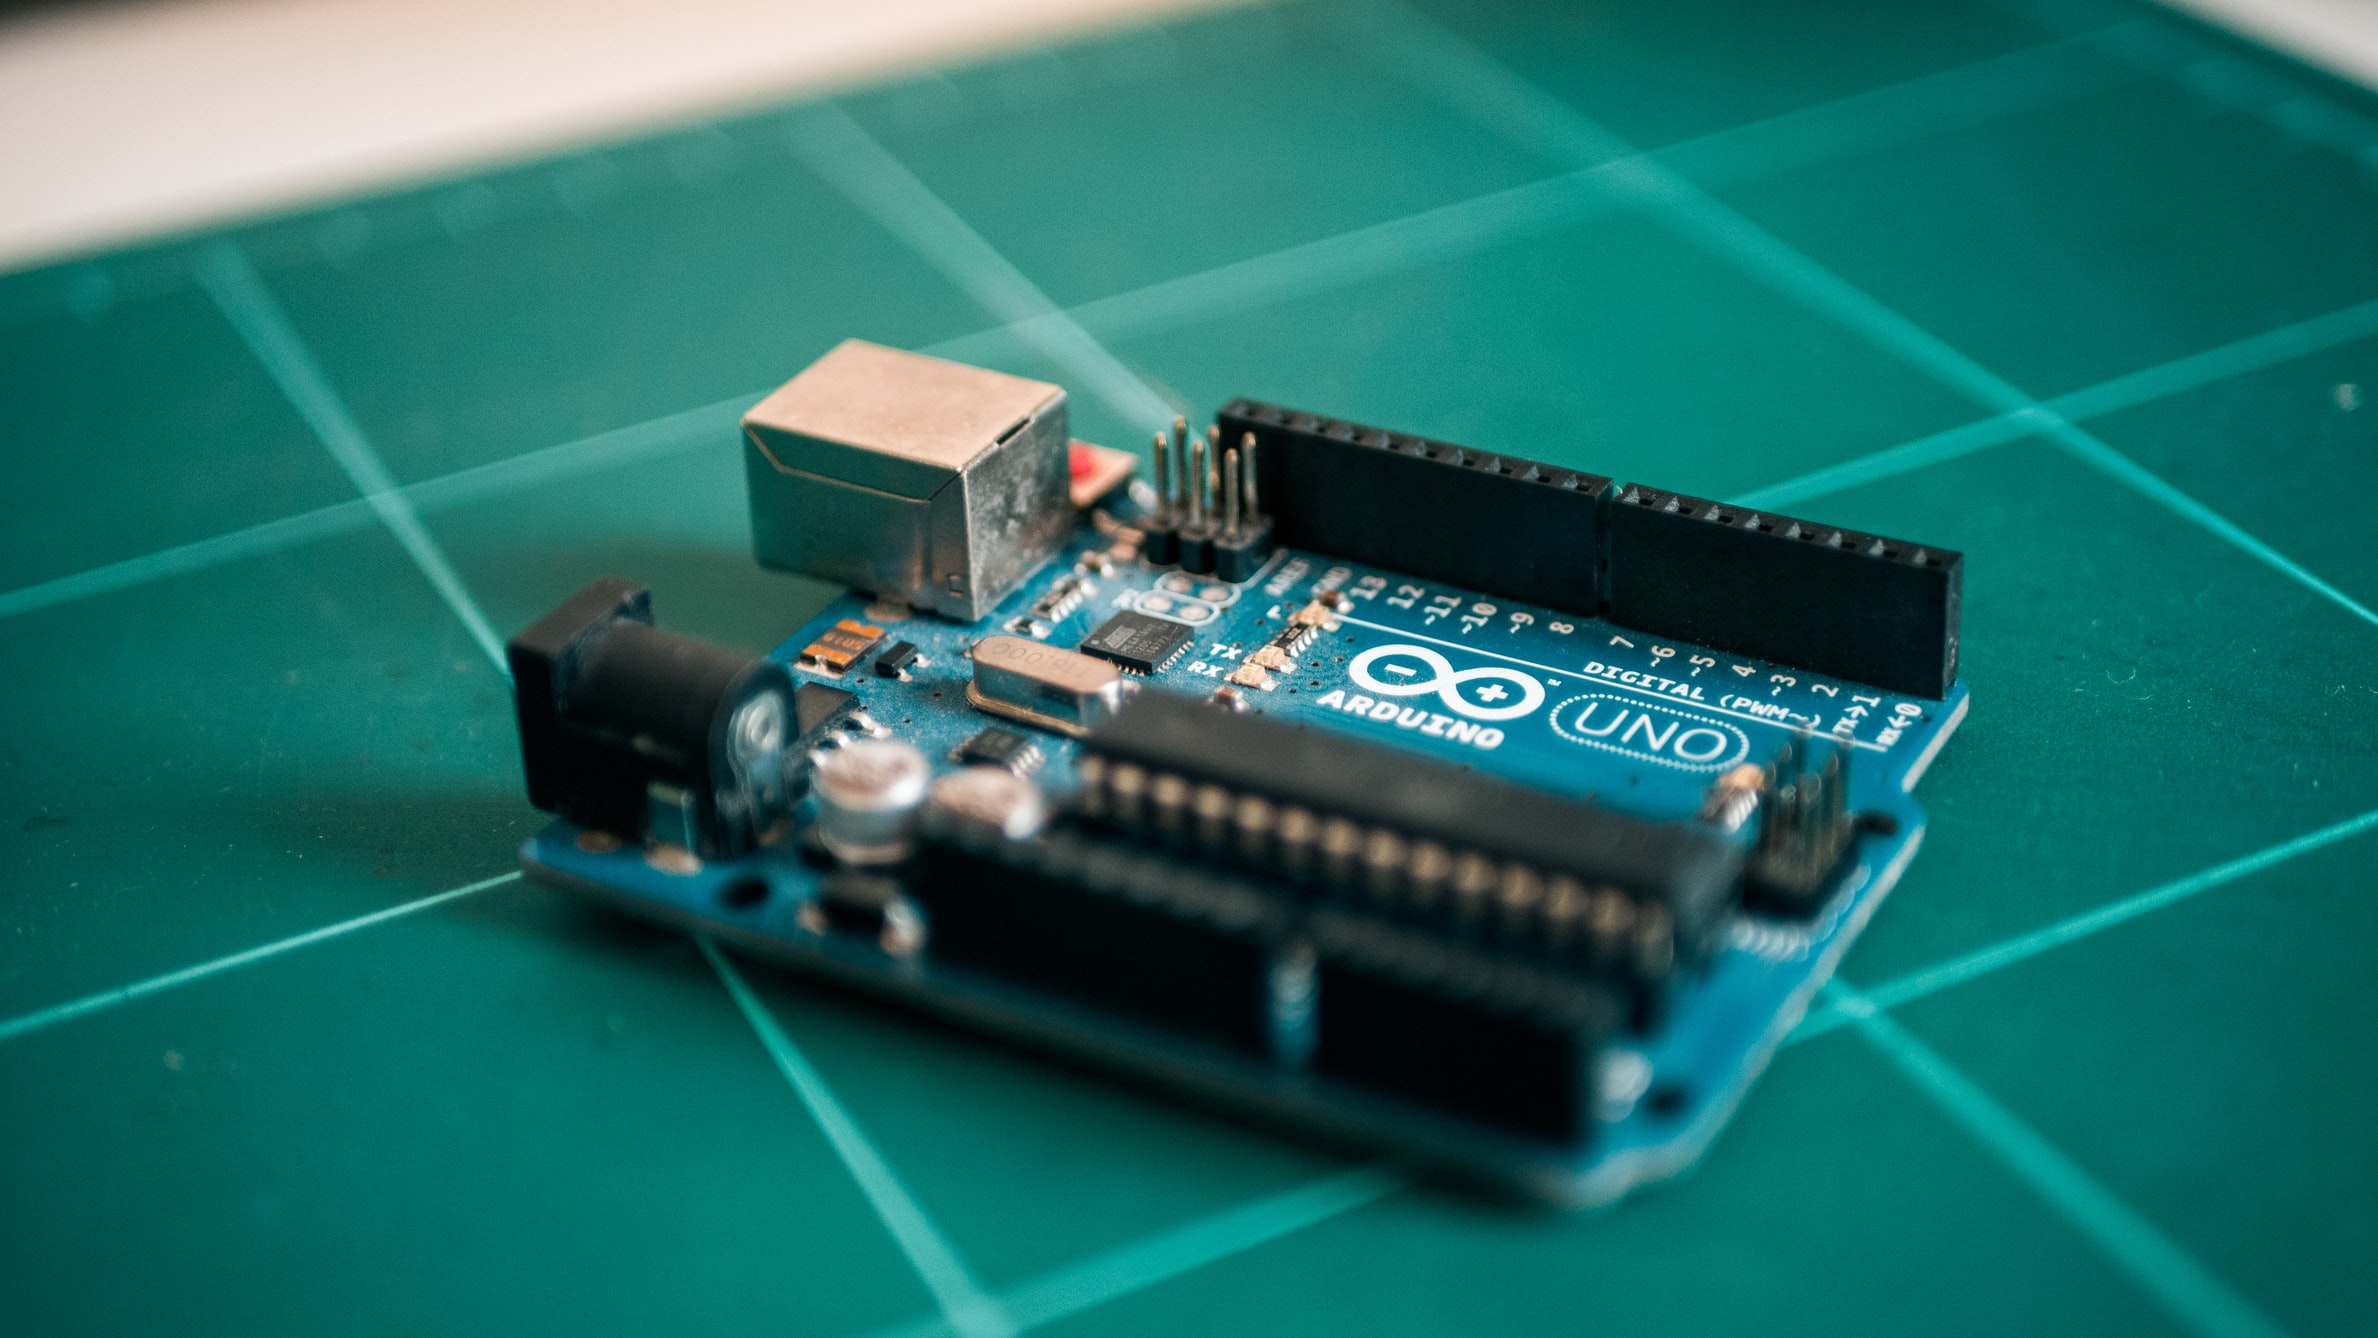 Arduino Uno on bench by Harrison Broadbent